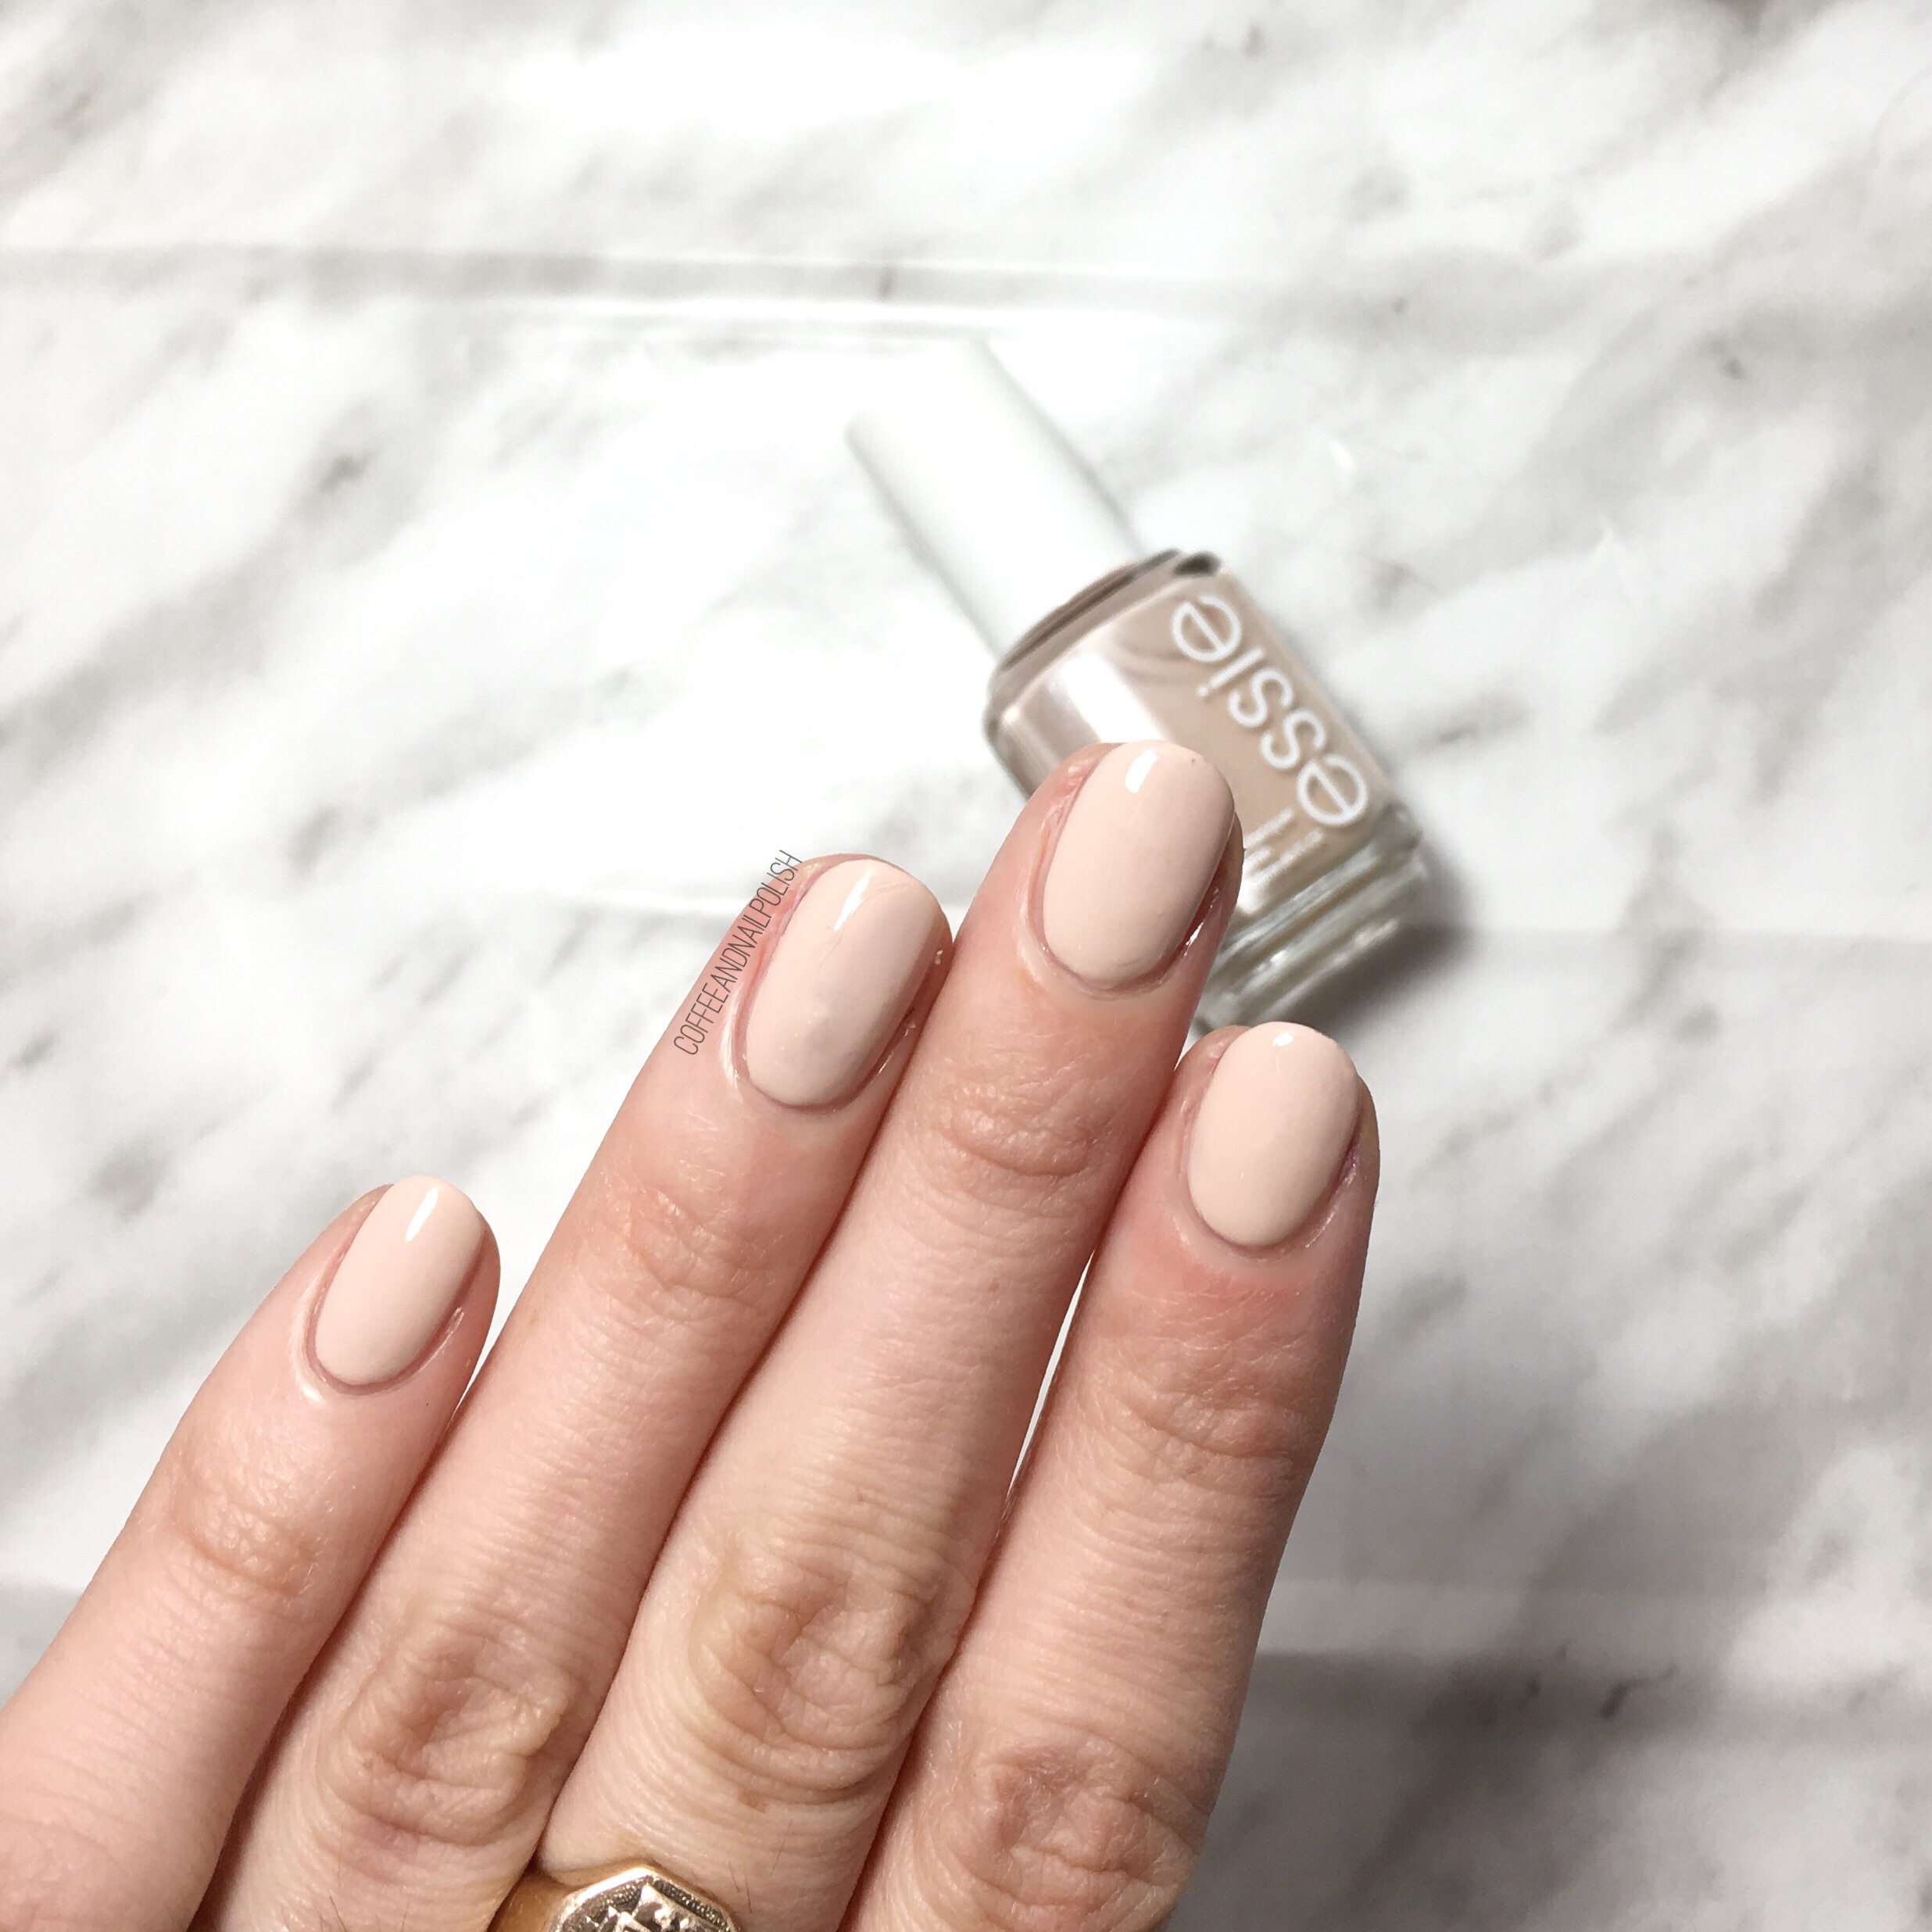 Nails, wanted!: Essie Topless & Barefoot